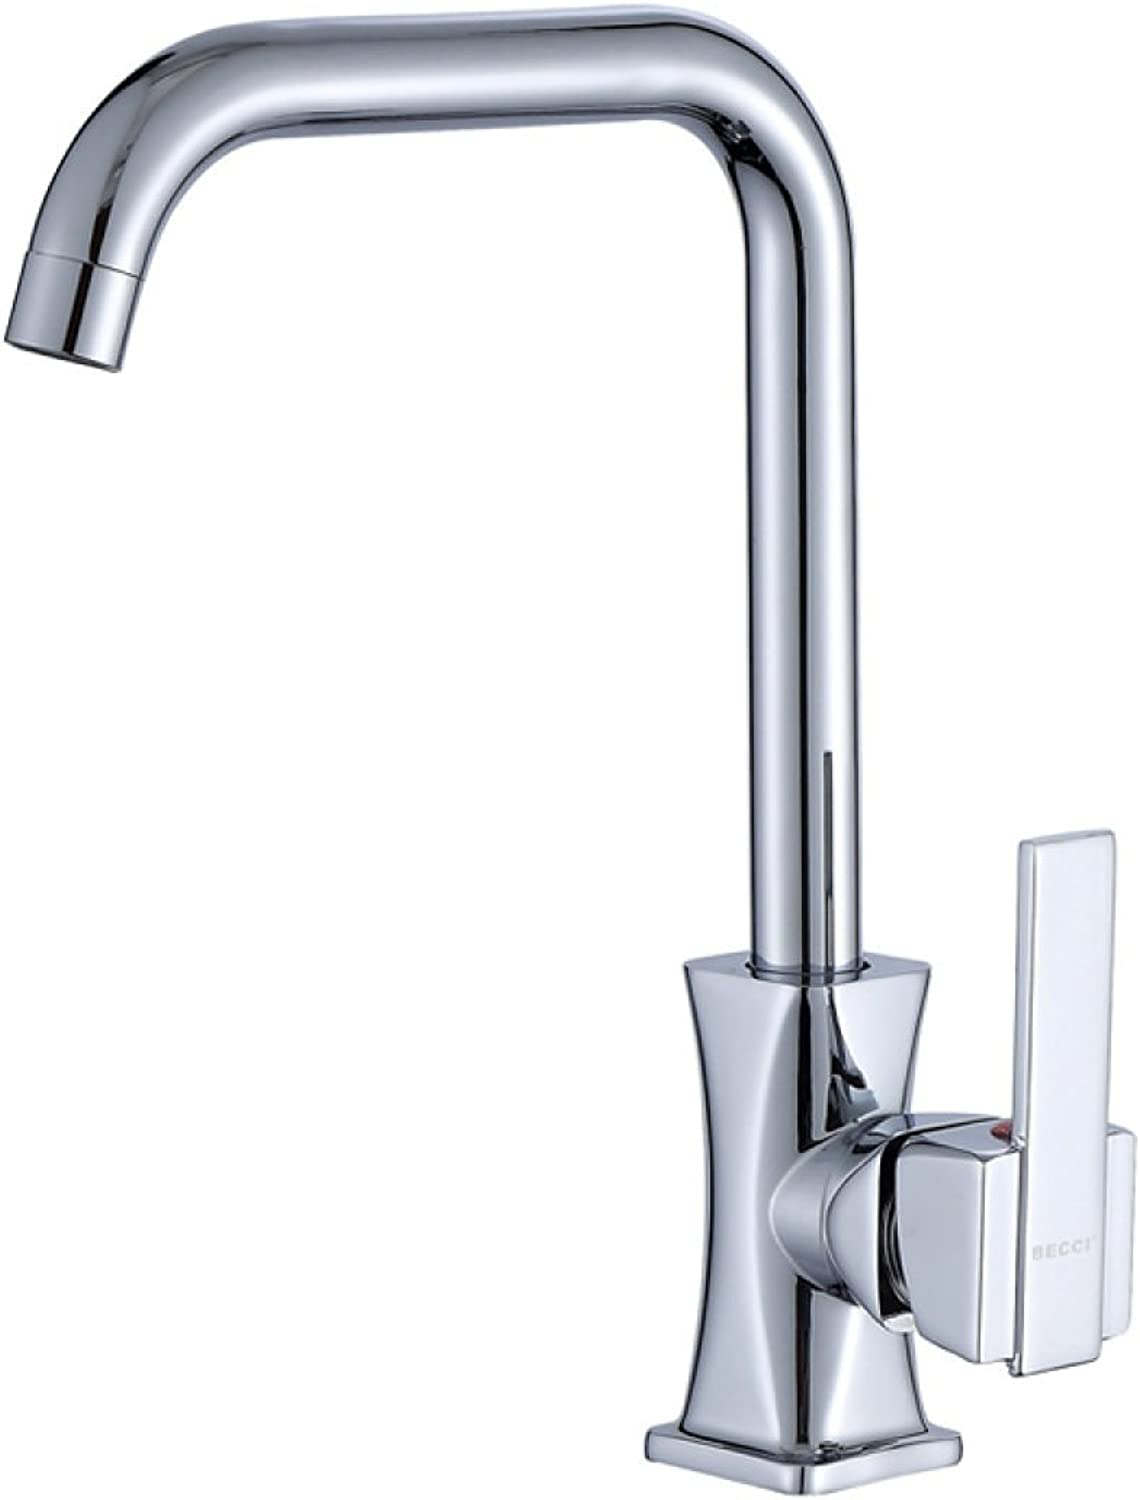 HQQ Bathroom kitchen faucet hot and cold water taps